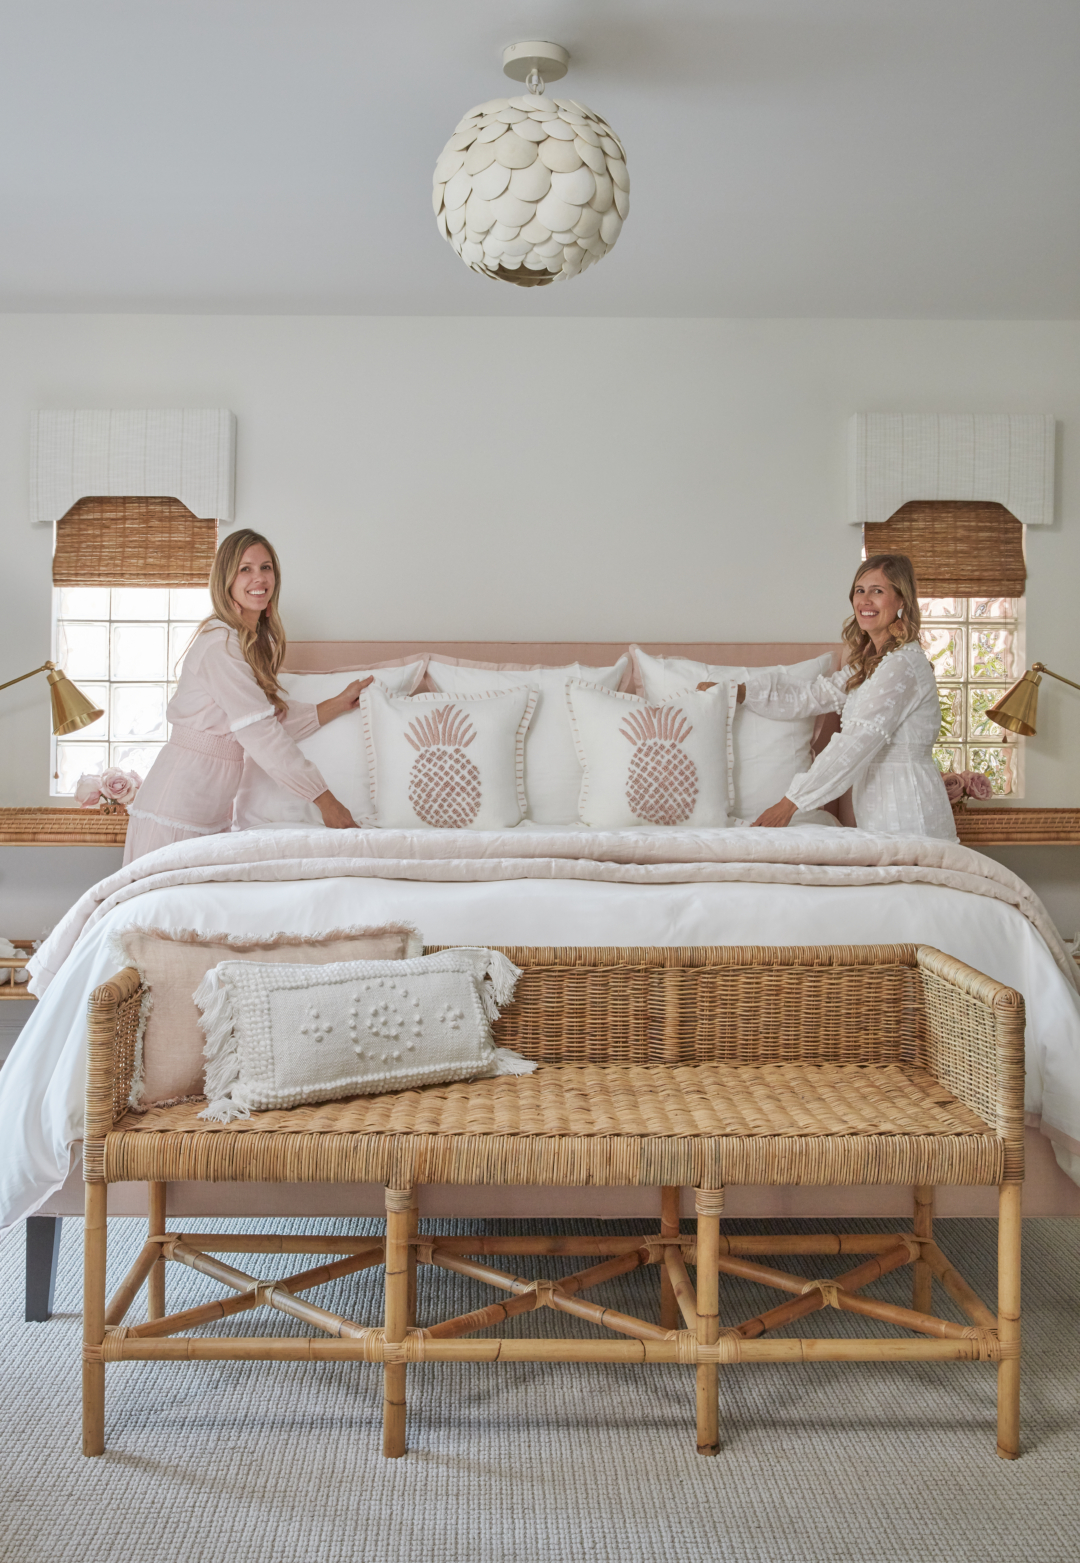 "Travel: Welcome to the ""Sisters Suiite"" by Serena & Lily and Palm Beach Lately at The Colony HotelTravel: Welcome to the ""Sisters Suiite"" by Serena & Lily and Palm Beach Lately at The Colony Hotel"